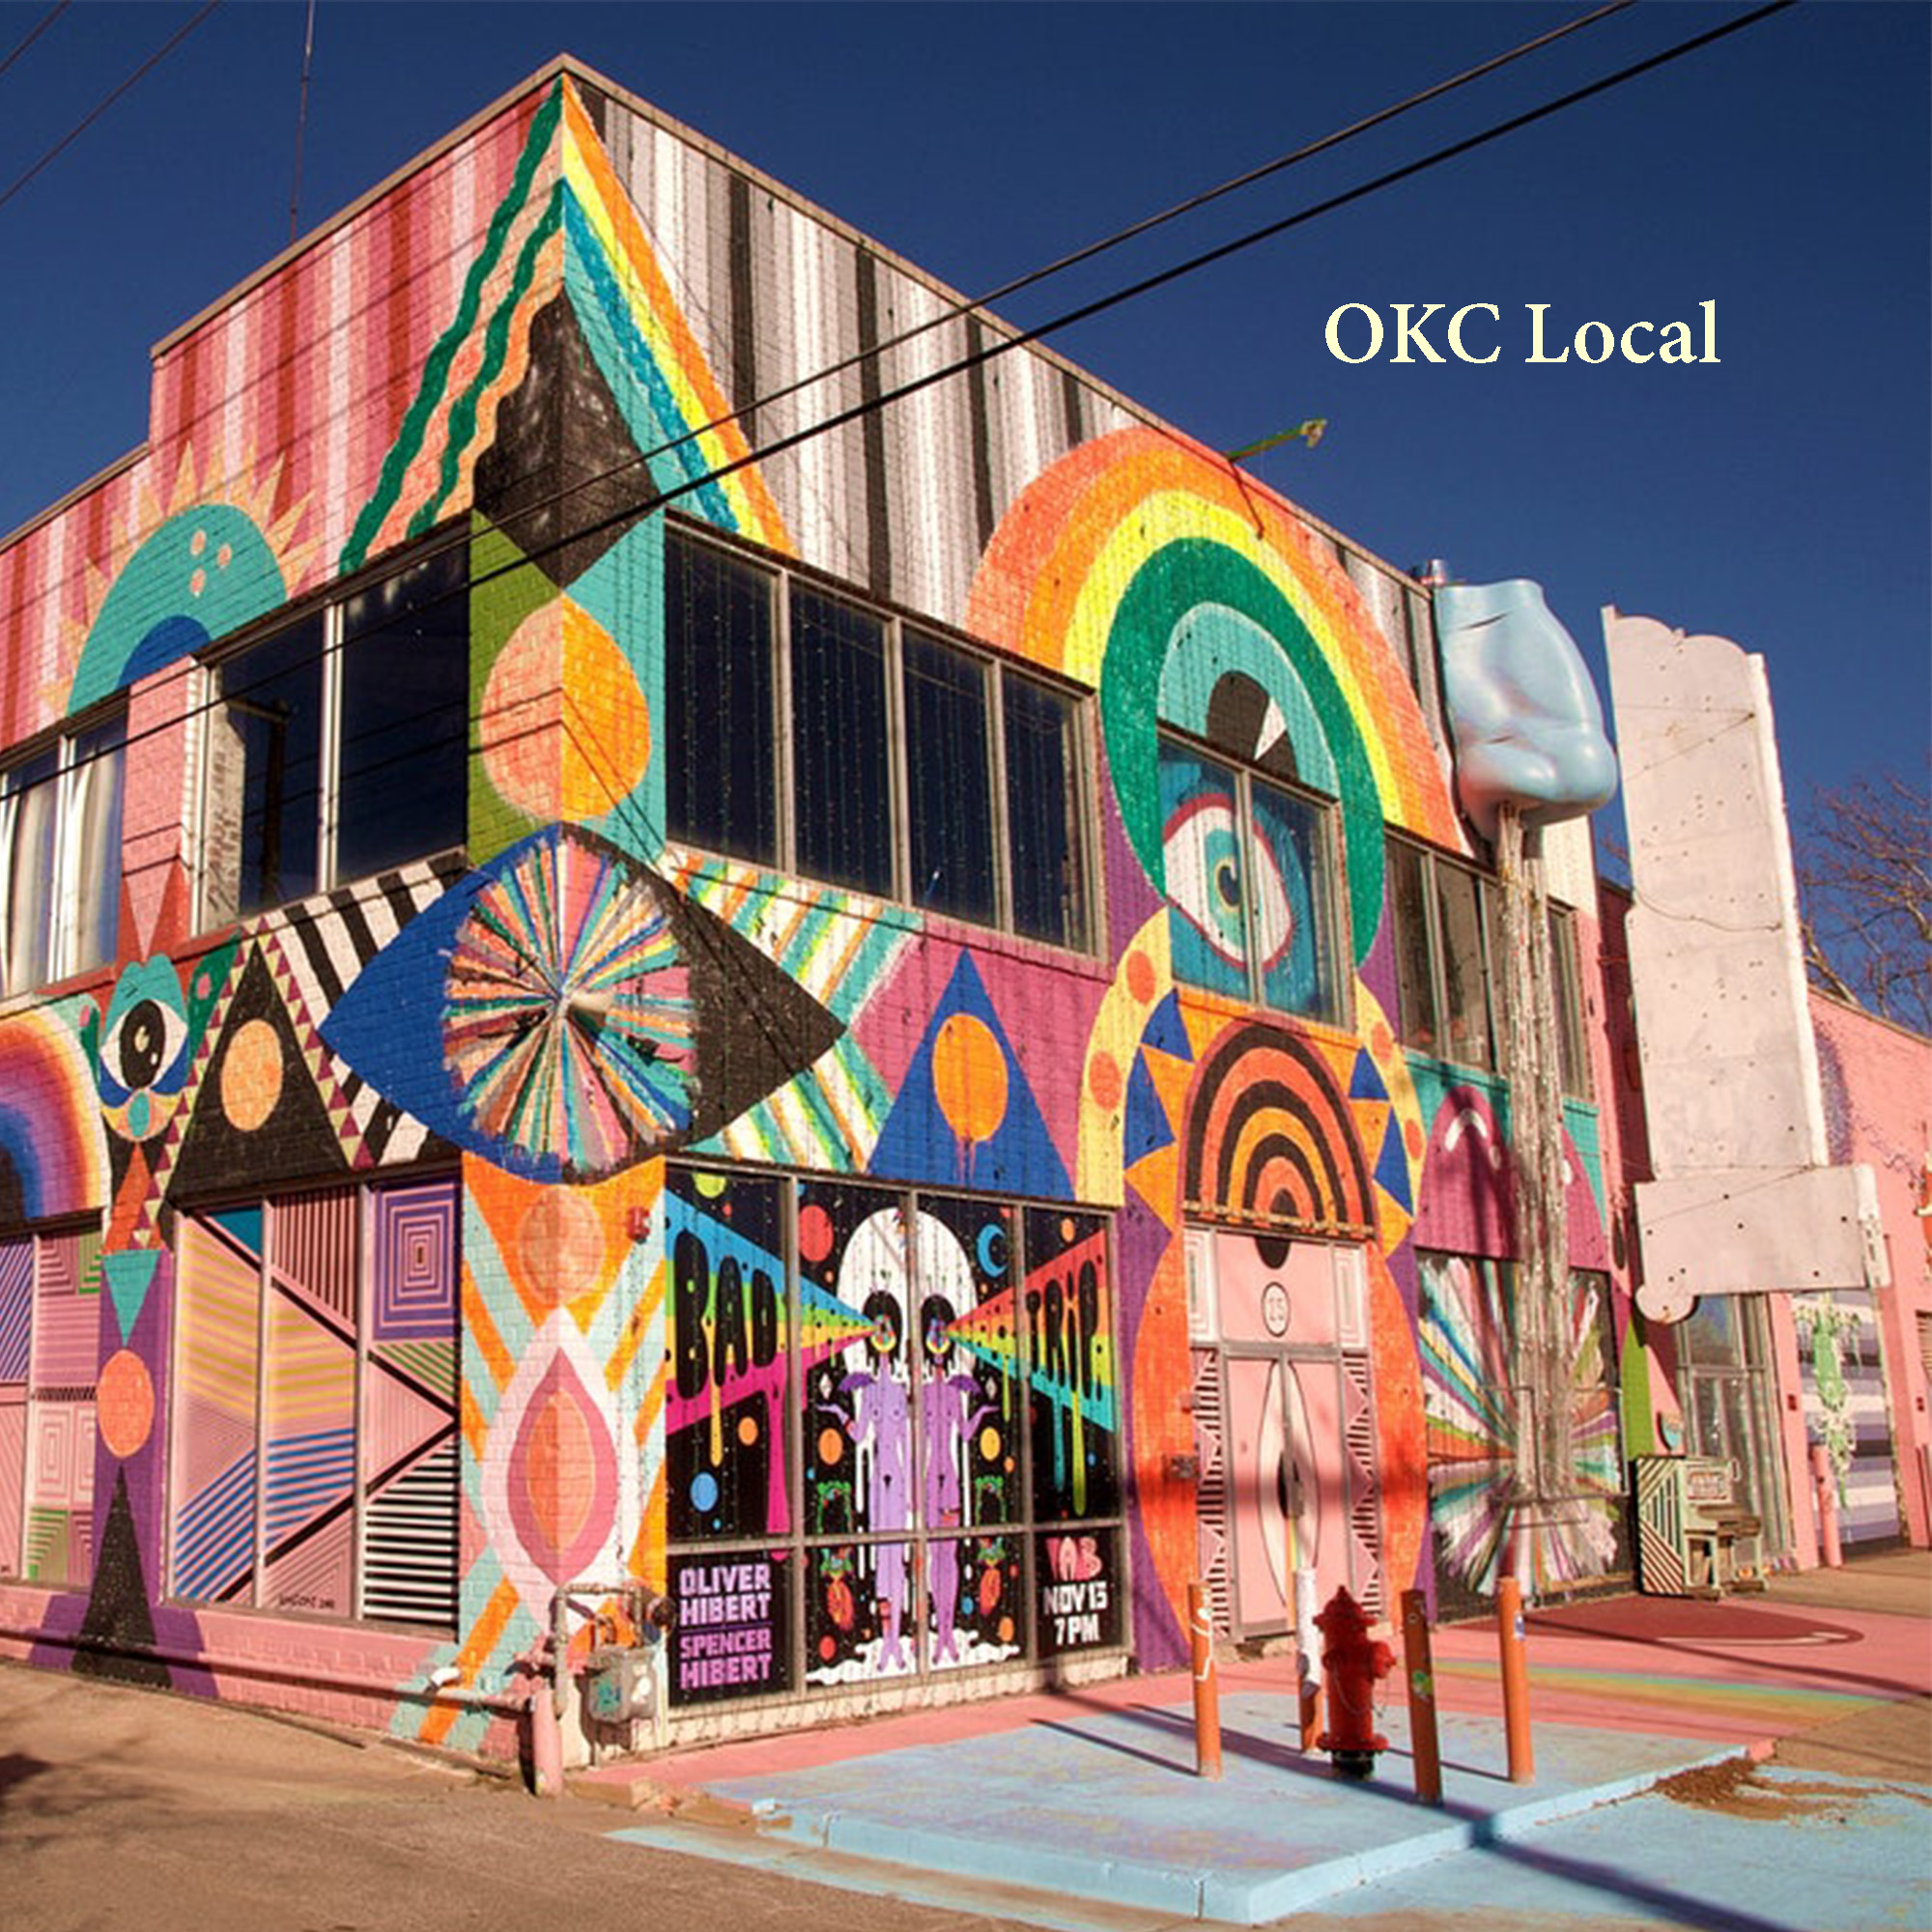 OKC Local   Local OKC Artists. By Averi Campbell.